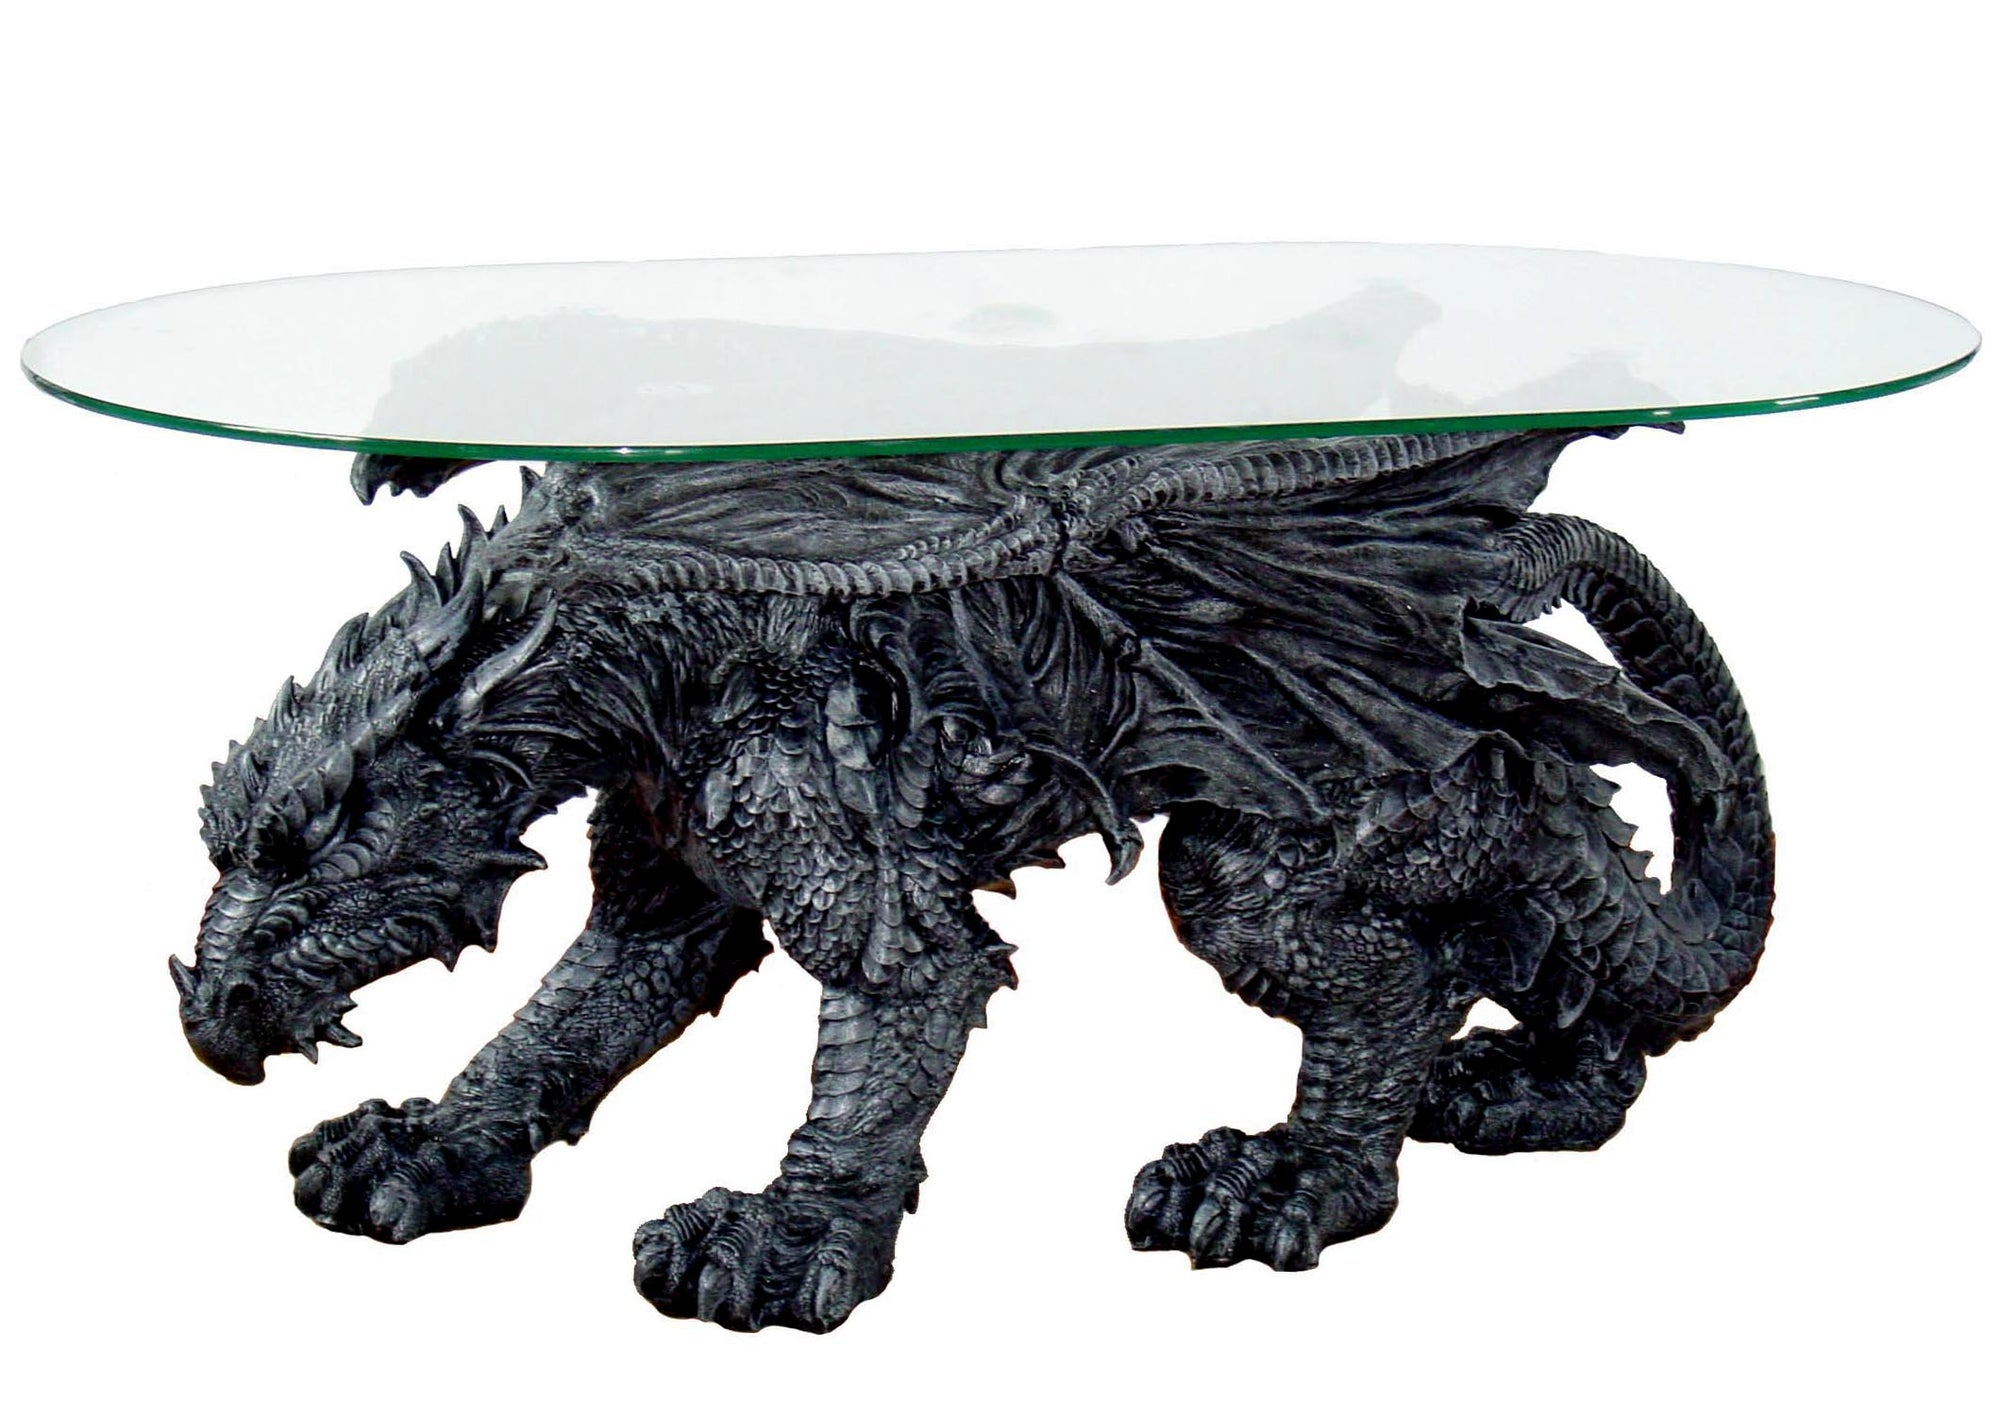 Crawling Dragon Table